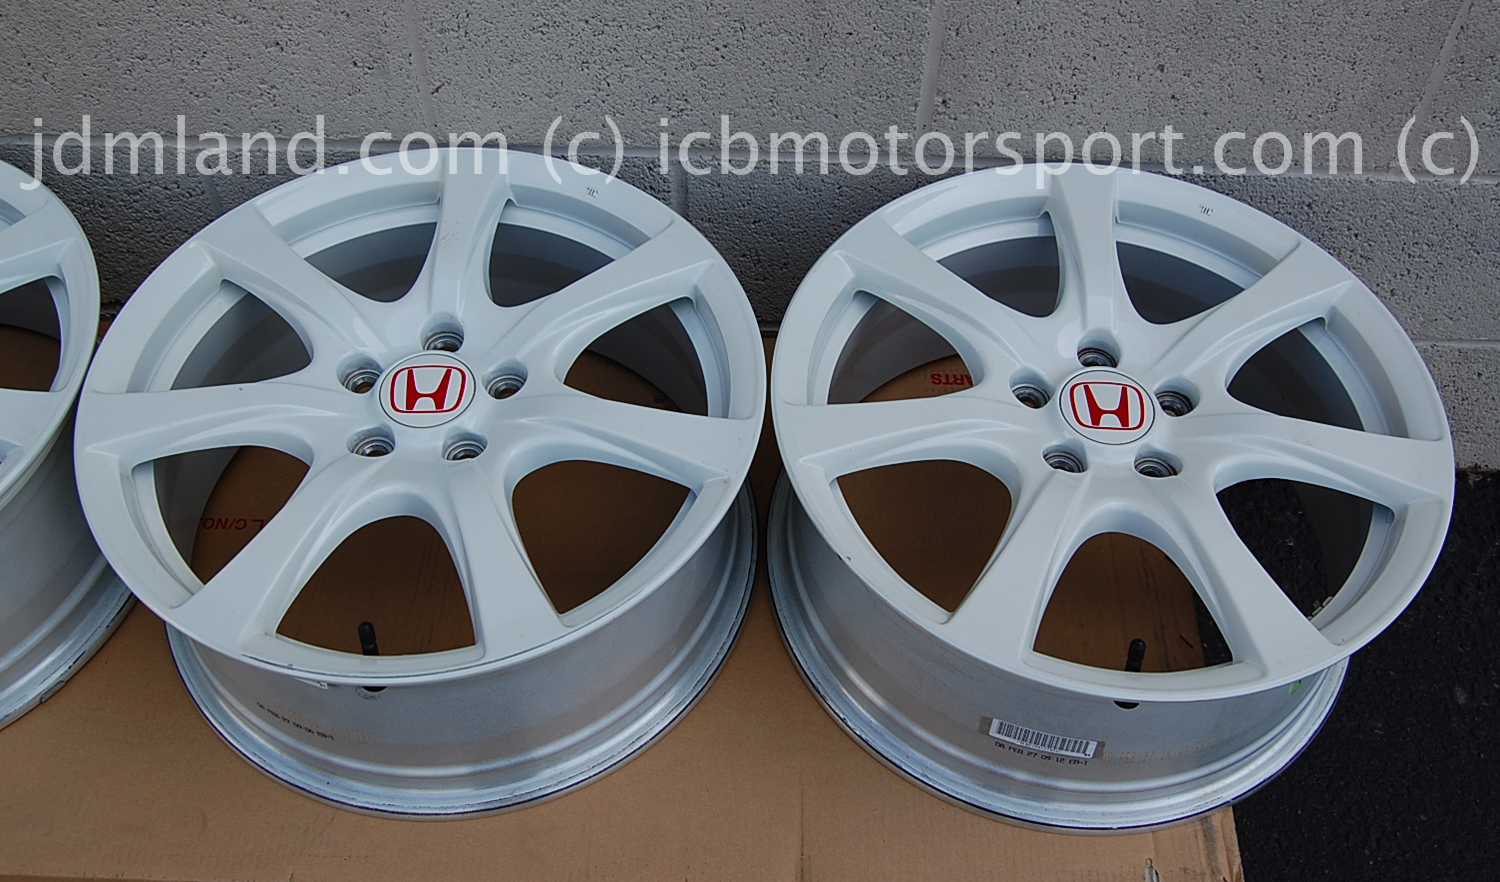 used fd2 civic type r champ white wheels 18 sold. Black Bedroom Furniture Sets. Home Design Ideas